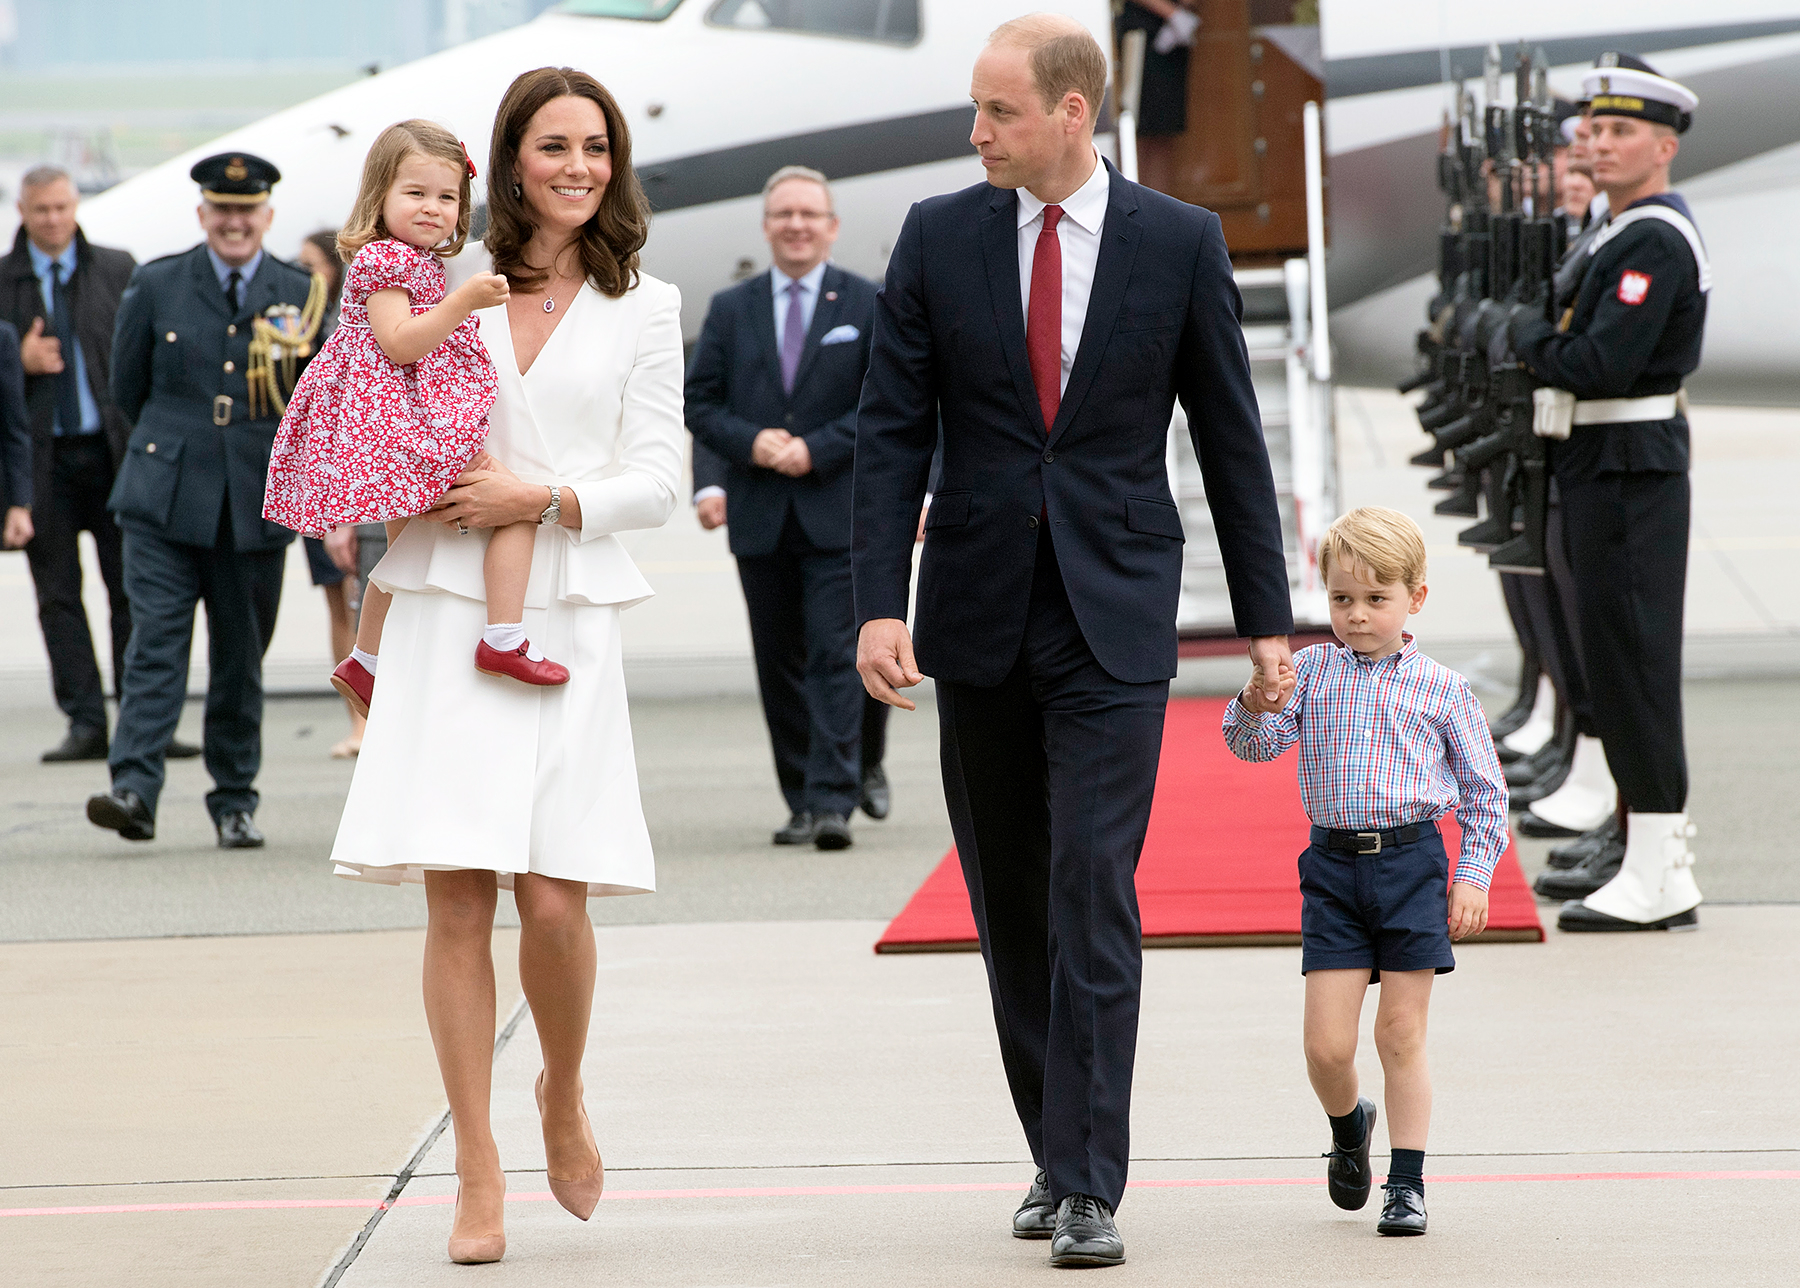 Duchess of Cambridge is not pregnant yet 16.09.2011 50